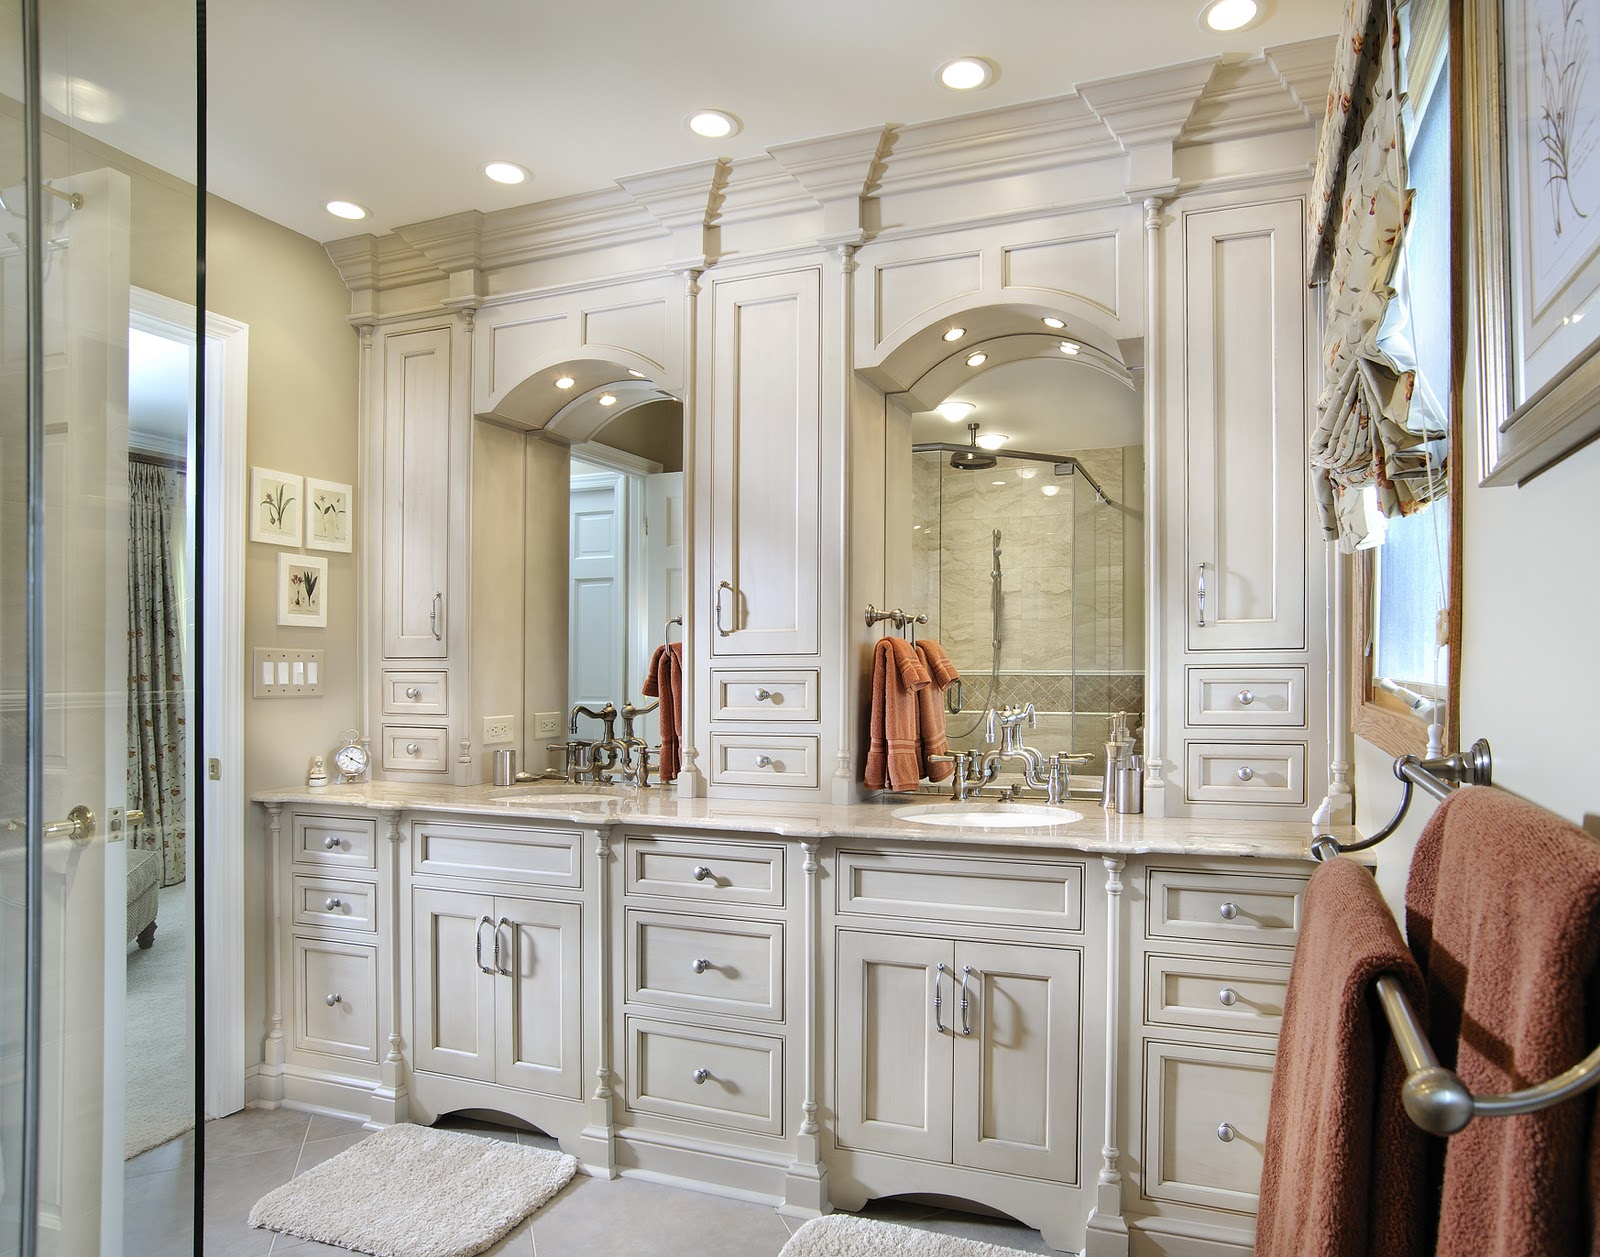 BATHROOM CABINETS DENVER, CUSTOM BATHROOM CABINETS